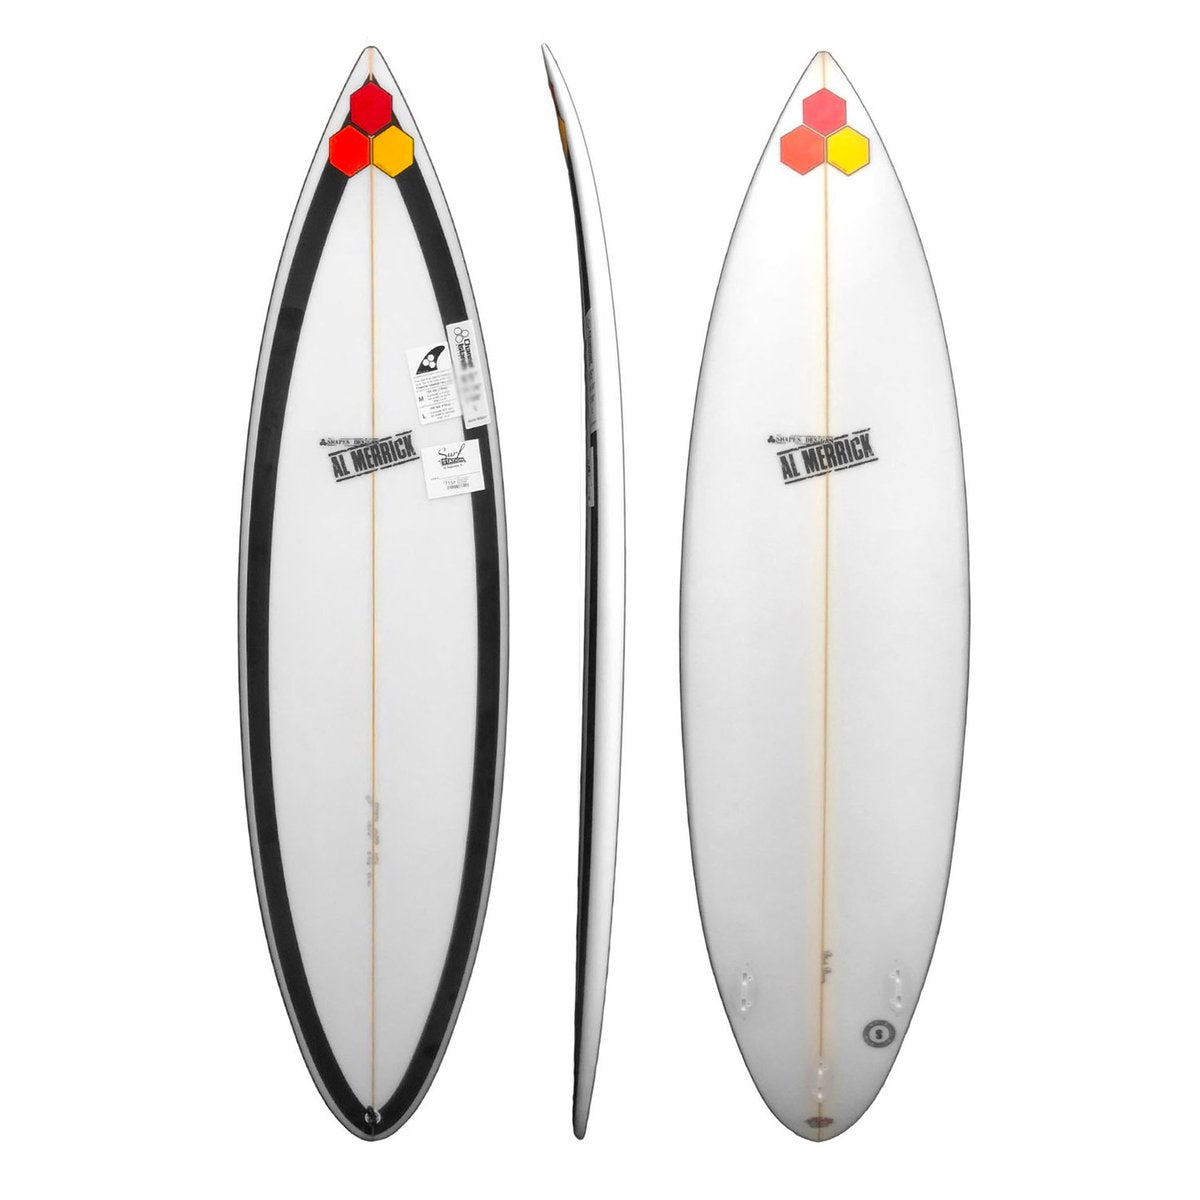 Channel Islands Black Beauty Surfboard - FCS I